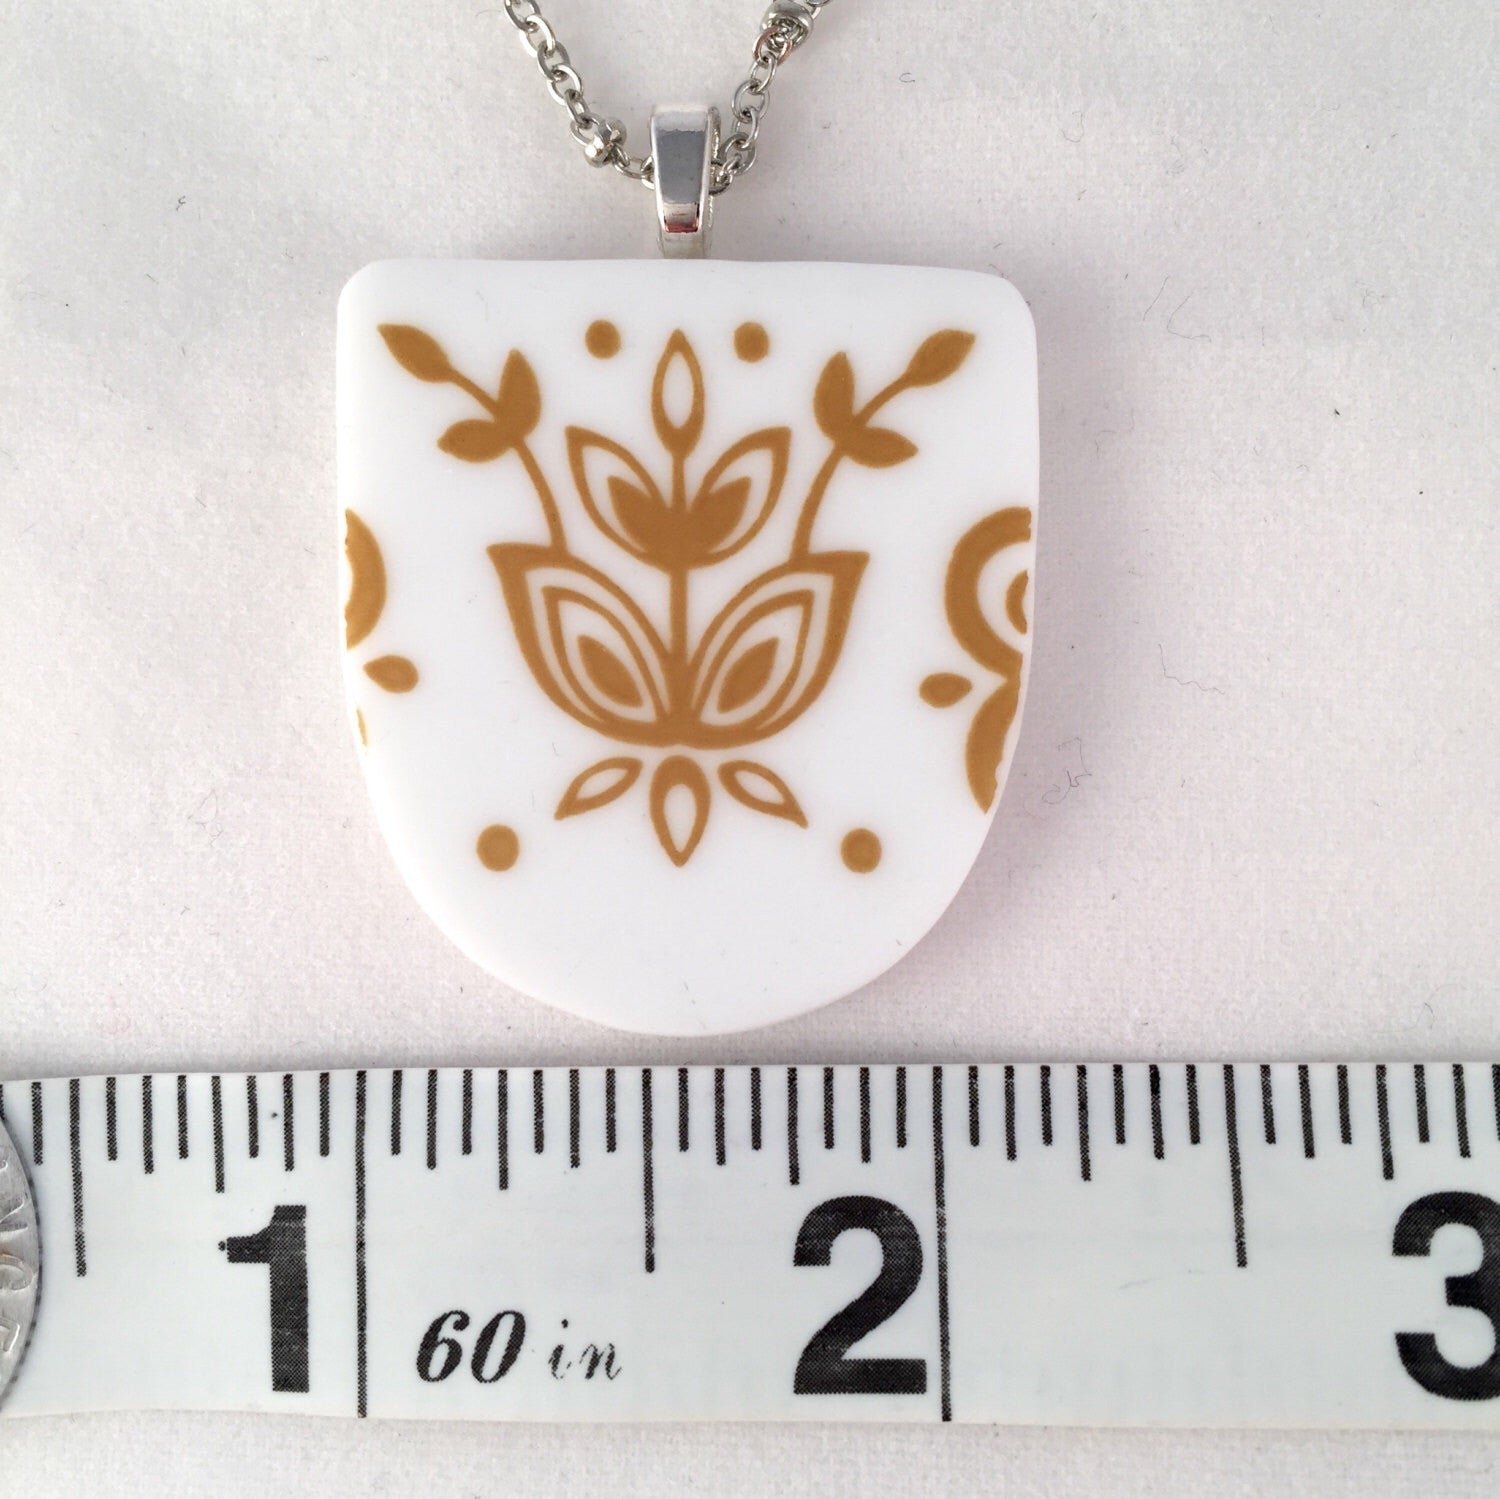 Broken China Jewelry - Corelle Necklace in Butterfly Gold Pattern Measurements